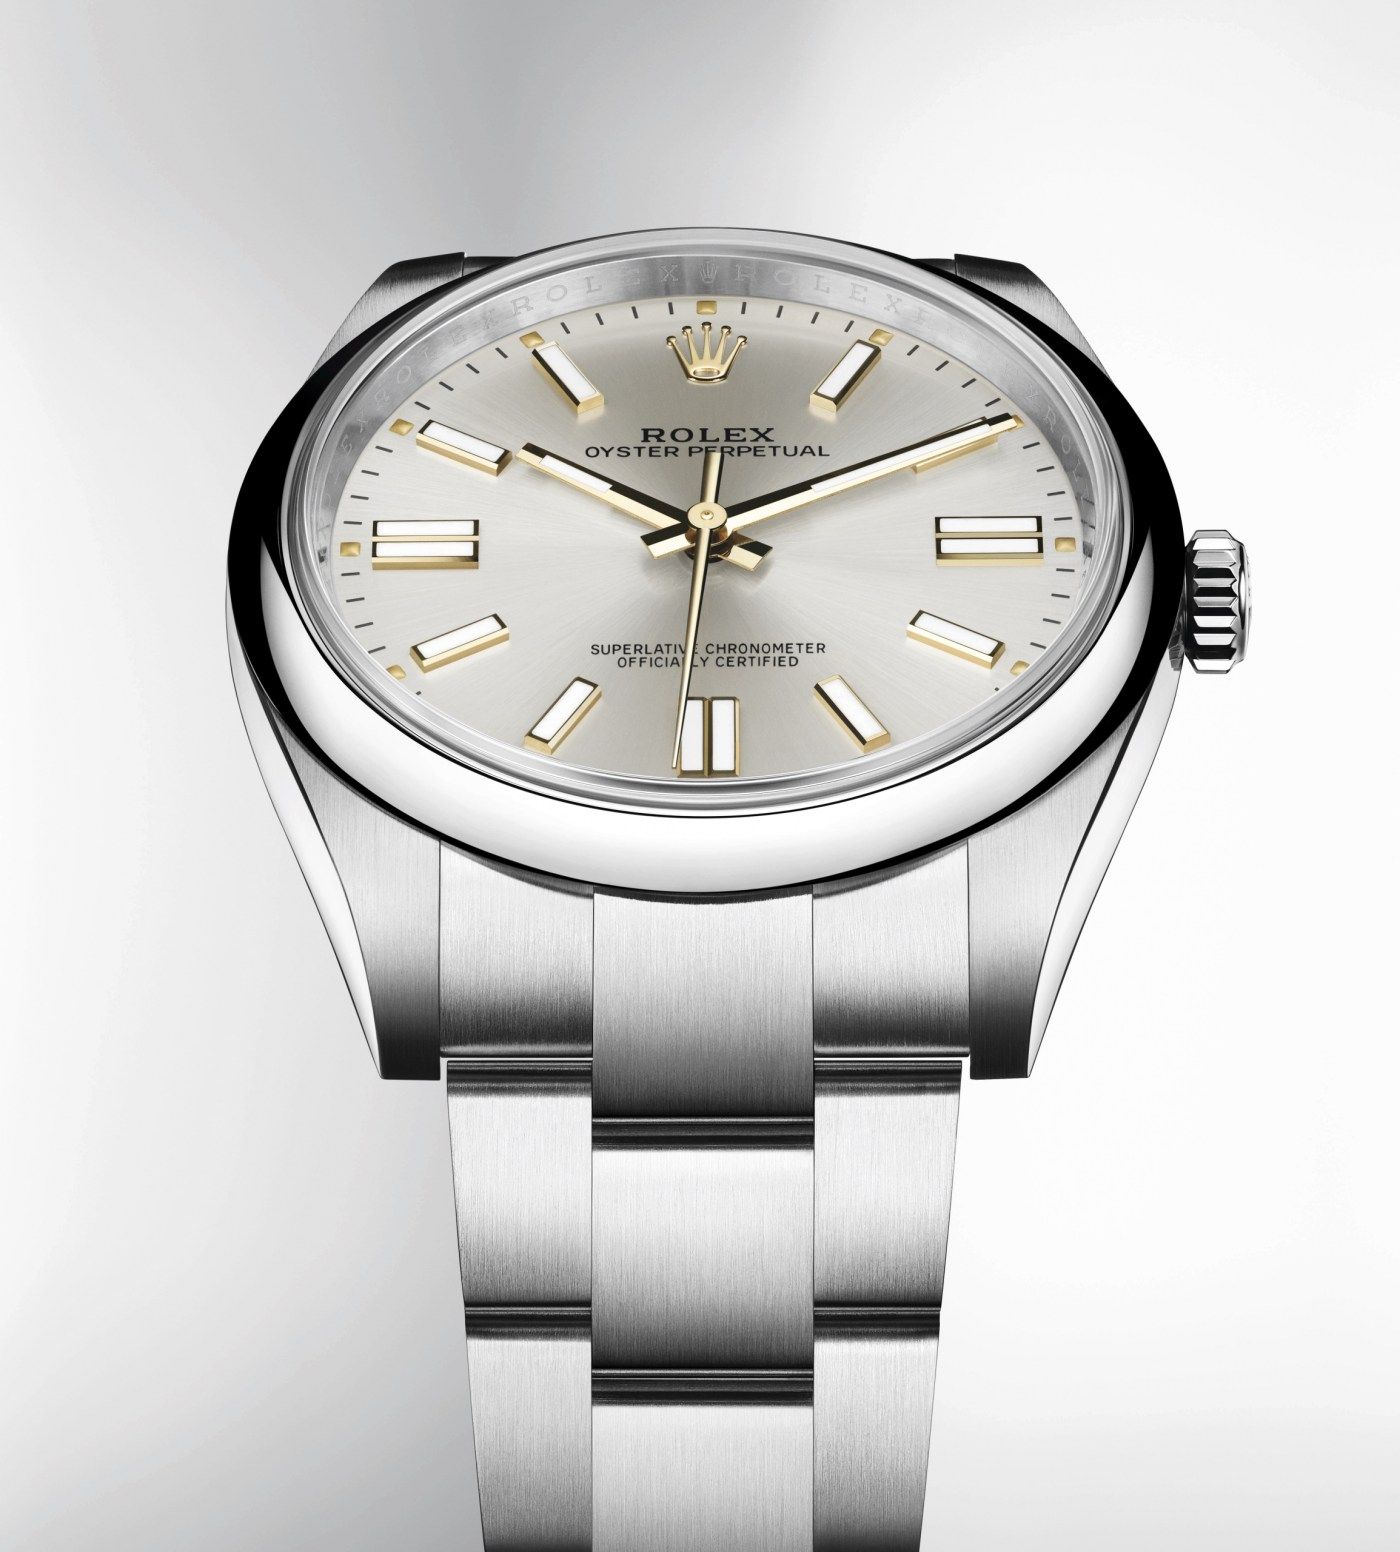 2020 Rolex Oyster Perpetual 41 silver dial